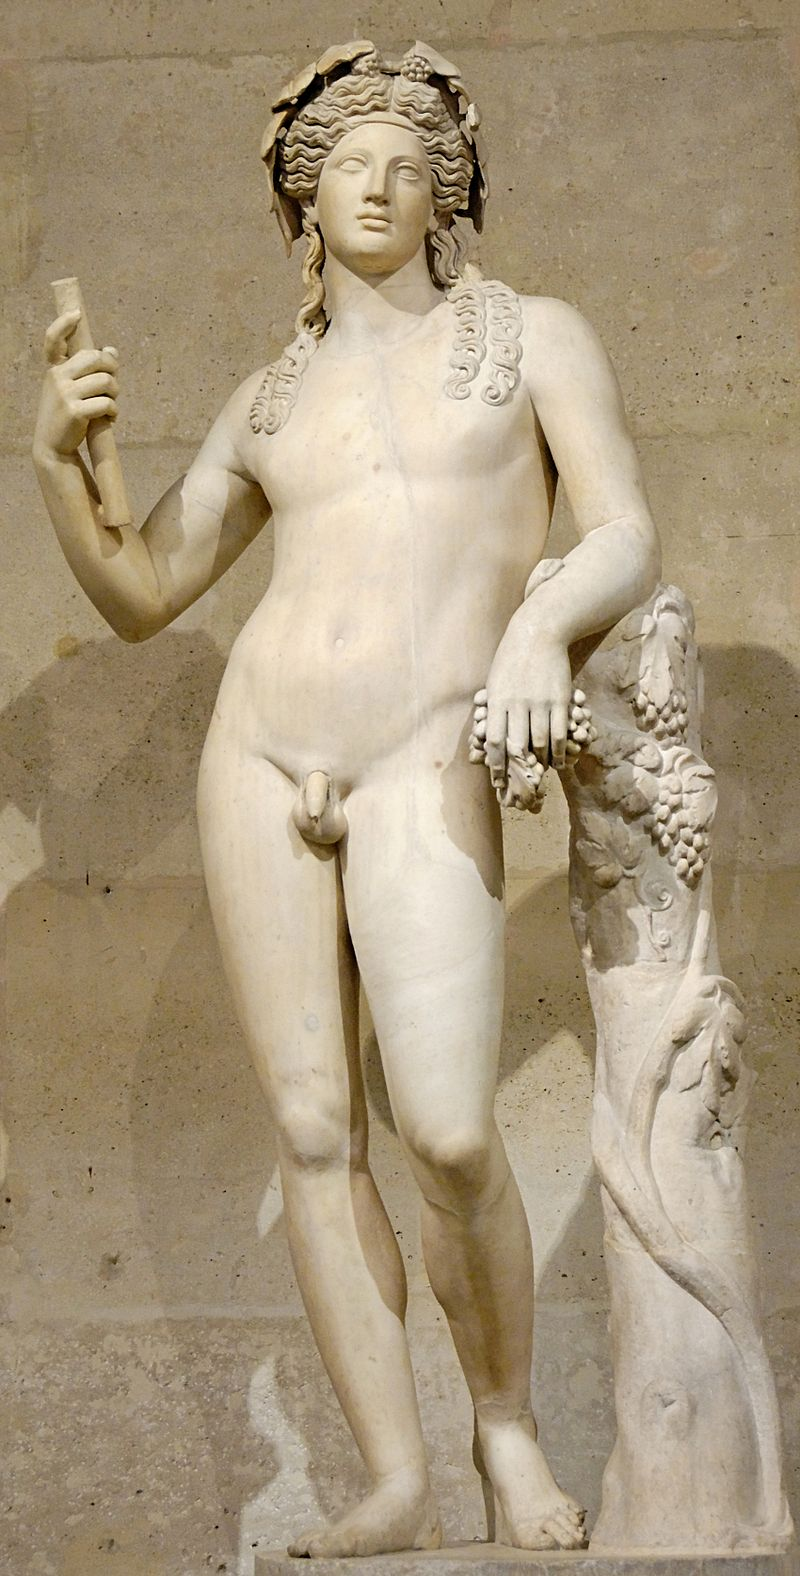 800px-Dionysos_Louvre_Ma87_n2